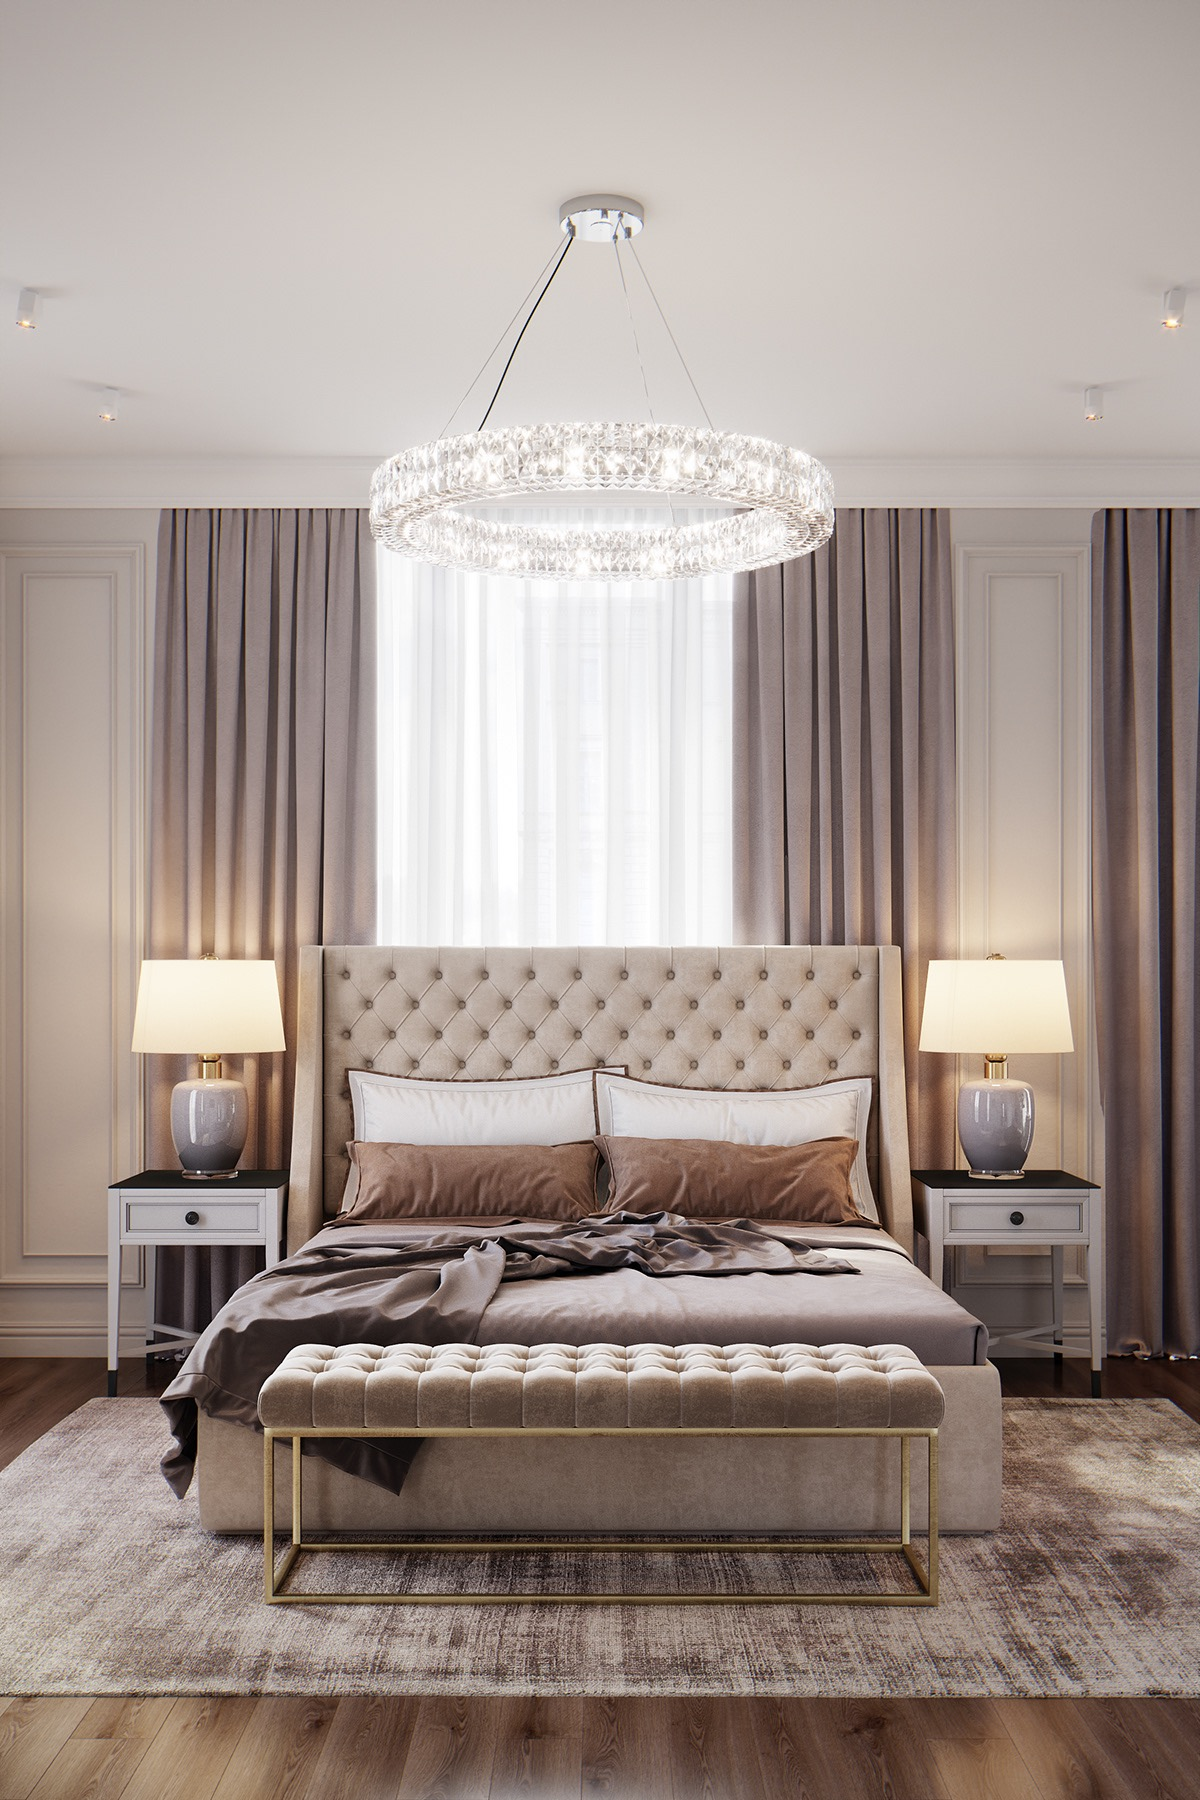 balancing-classic-and-modern-furniture-in-transitional-bedrooms